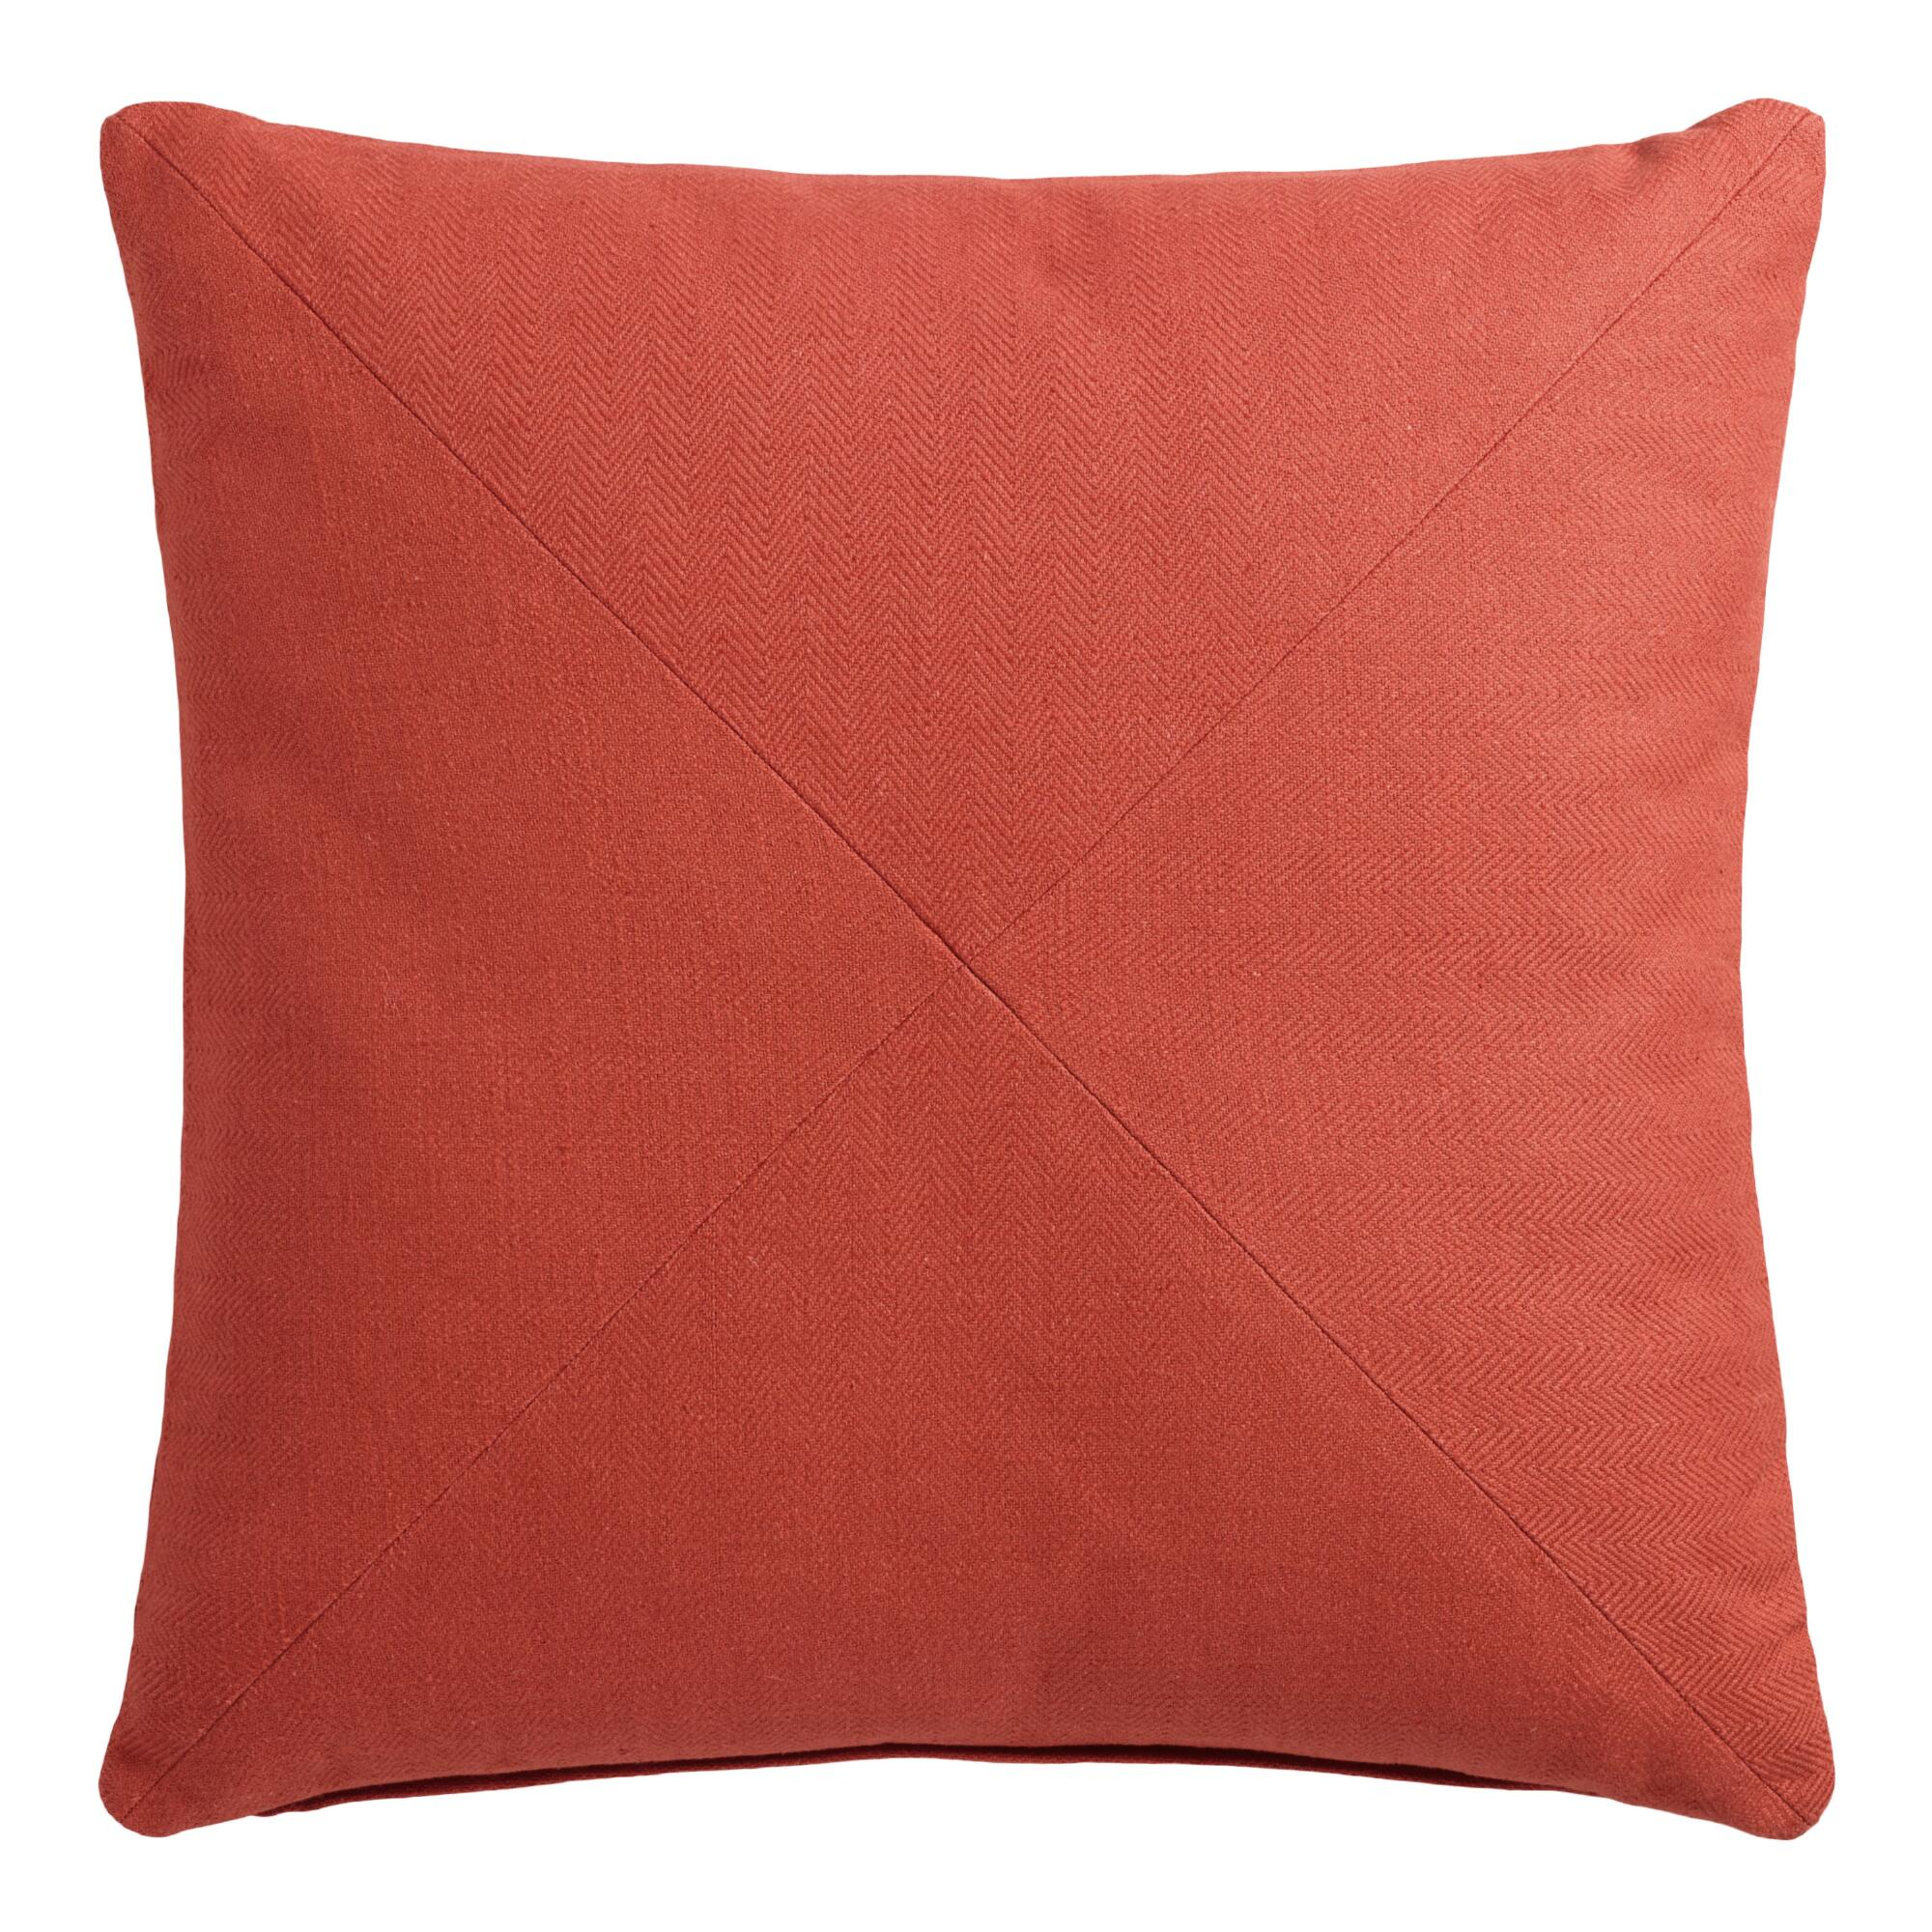 Throw Pillows With Orange : Orange Herringbone Cotton Throw Pillow World Market